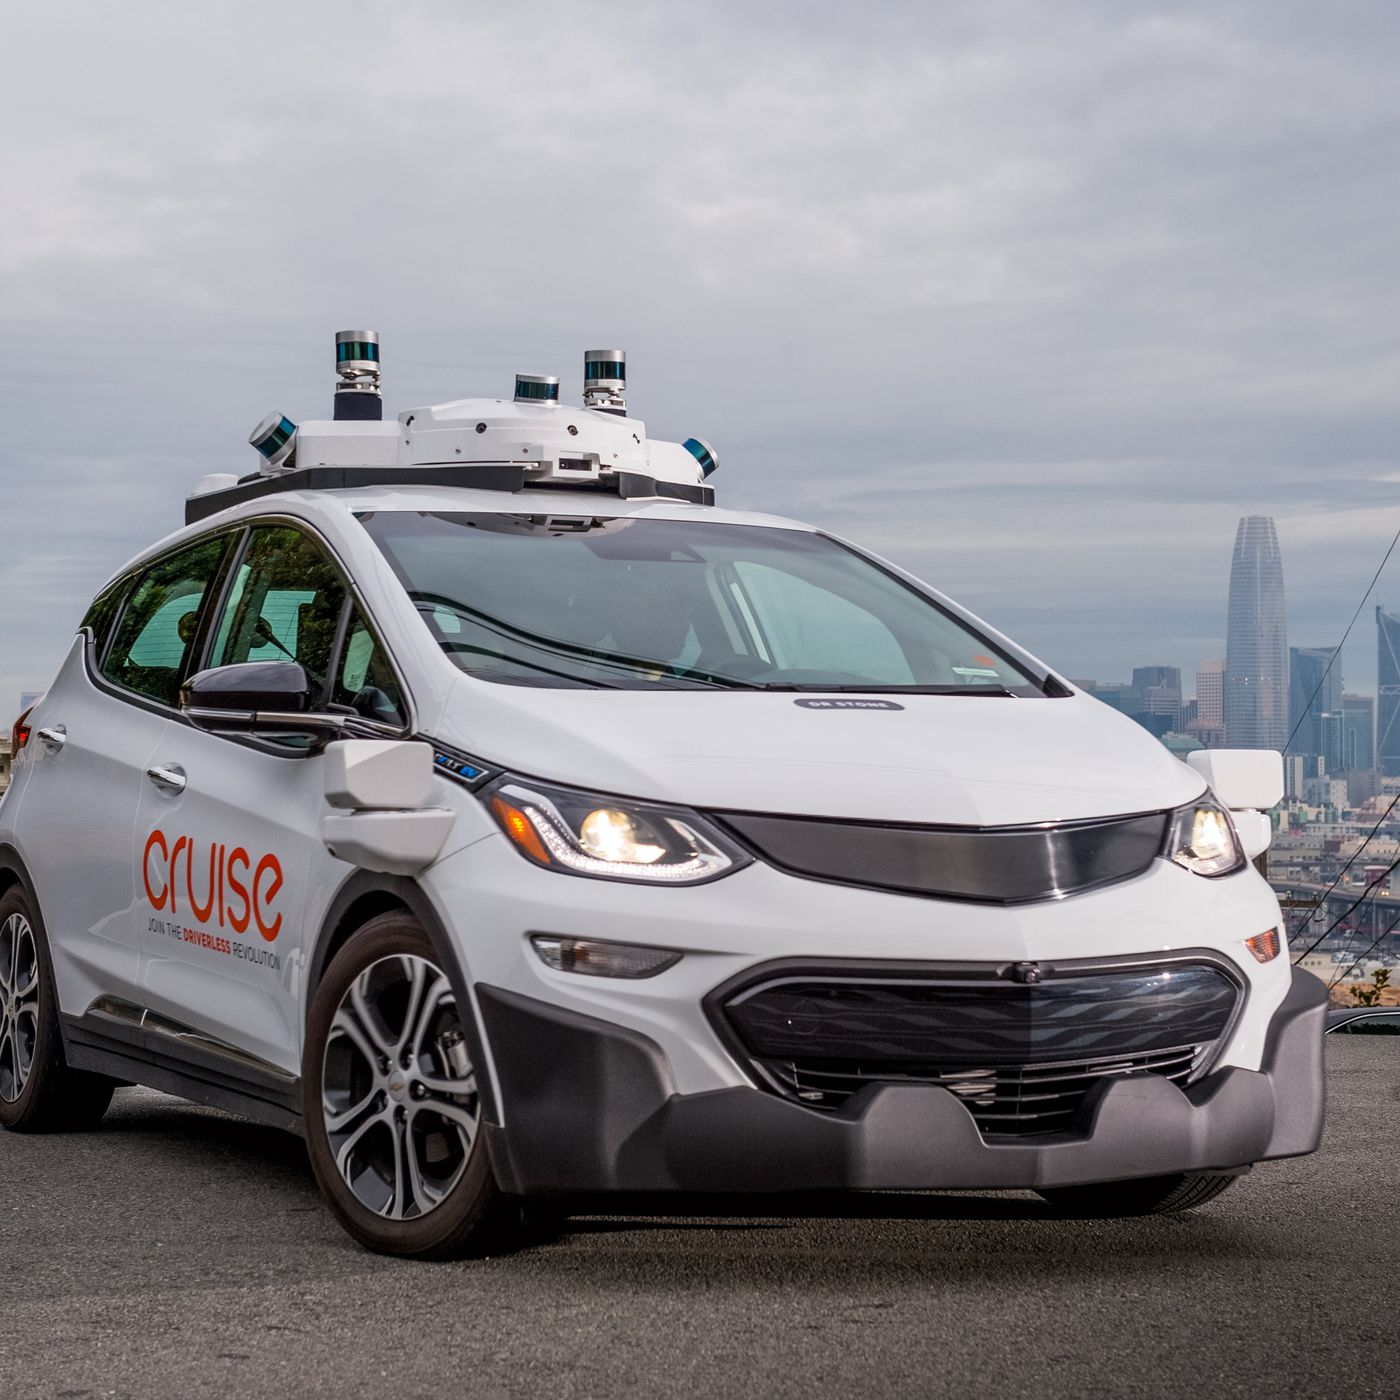 theverge.com - Andrew J. Hawkins - Watch Cruise's self-driving cars perform 1,400 unprotected left turns in 24 hours